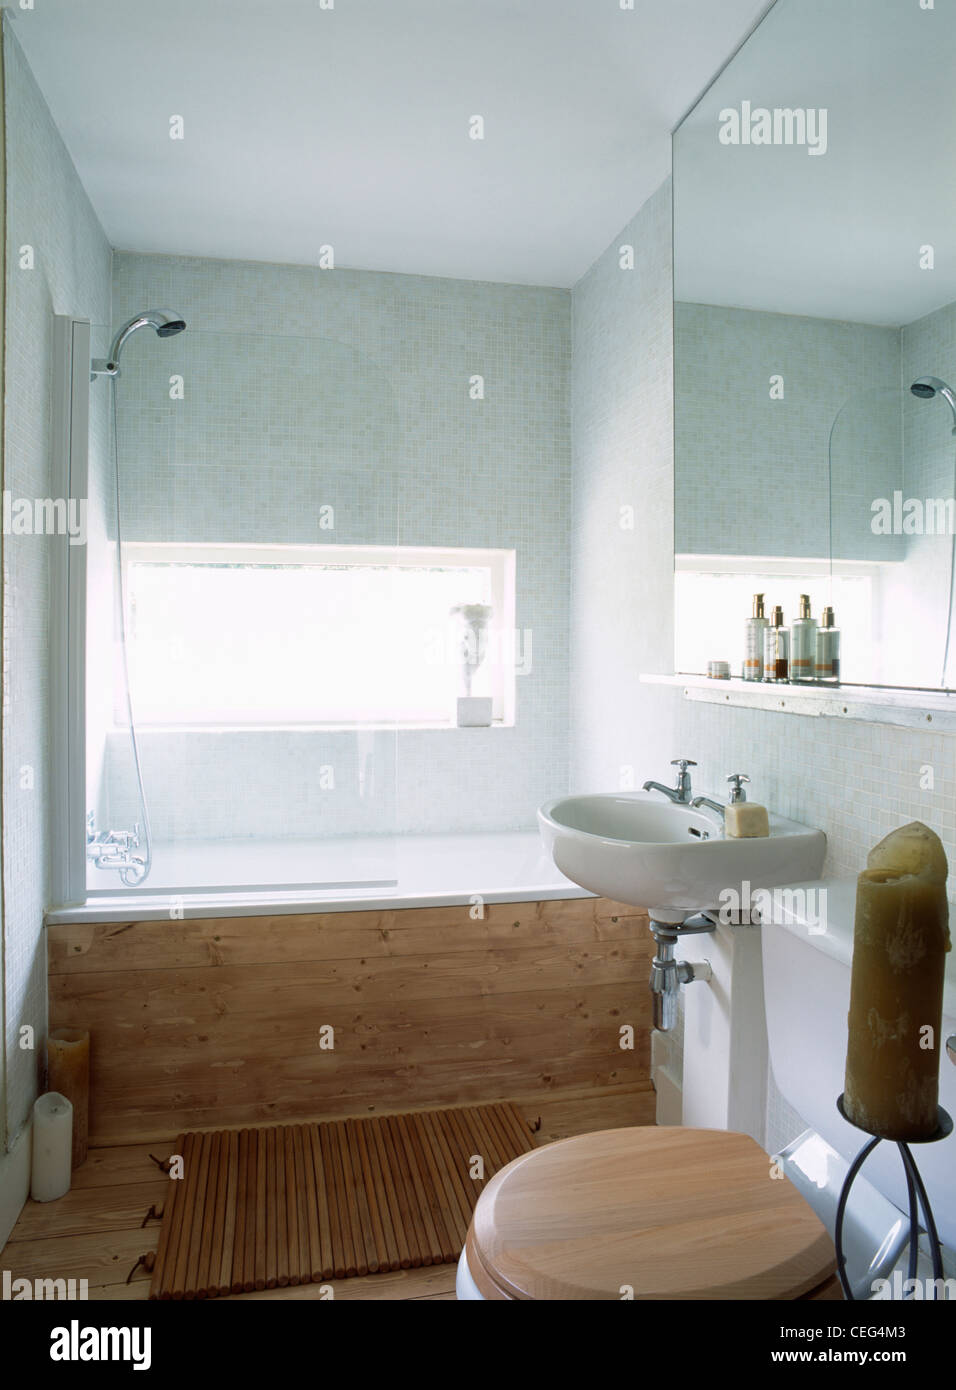 Shower Above Wood Paneled Bath In Modern White Bathroom With Large Mirror Basin